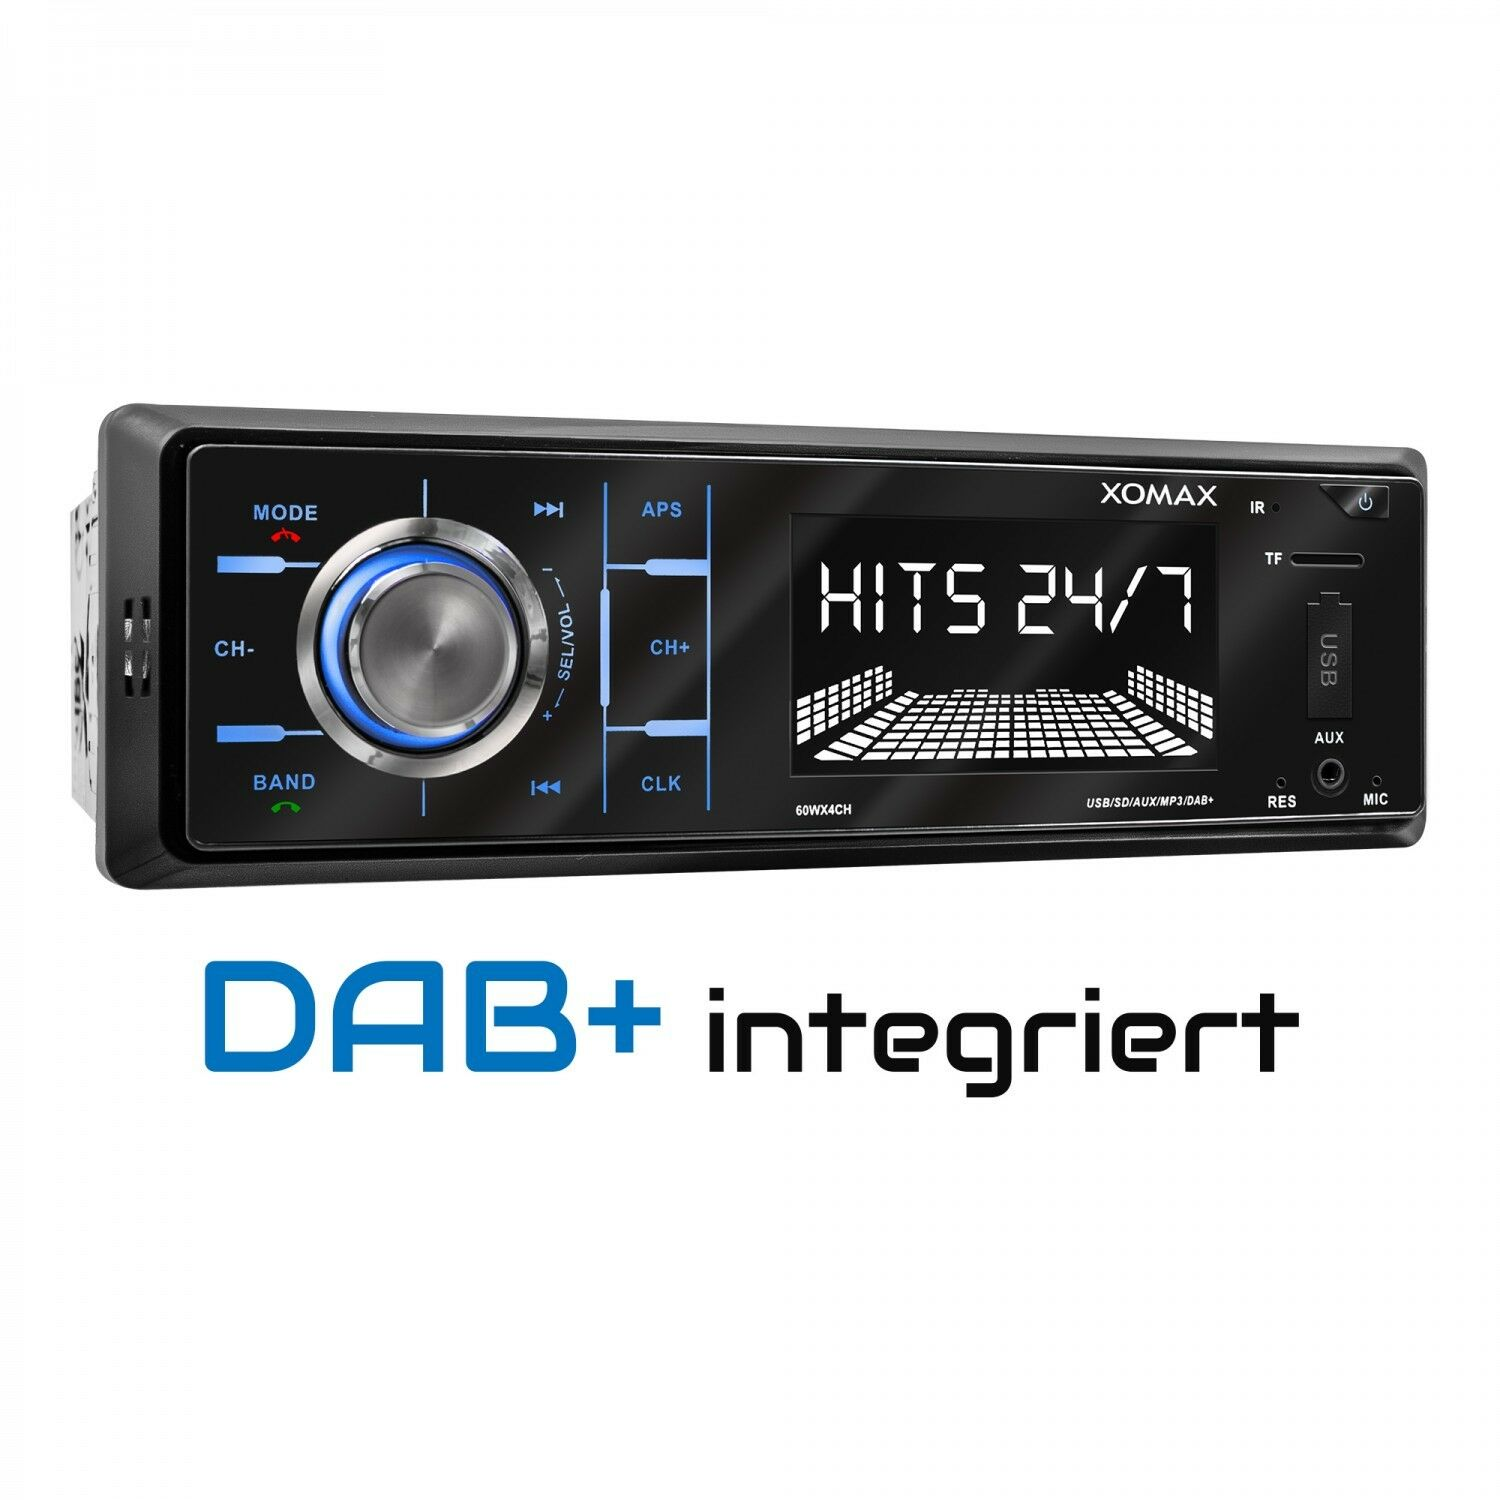 dab autoradio rds am fm bluetooth freisprecheinrichtung. Black Bedroom Furniture Sets. Home Design Ideas